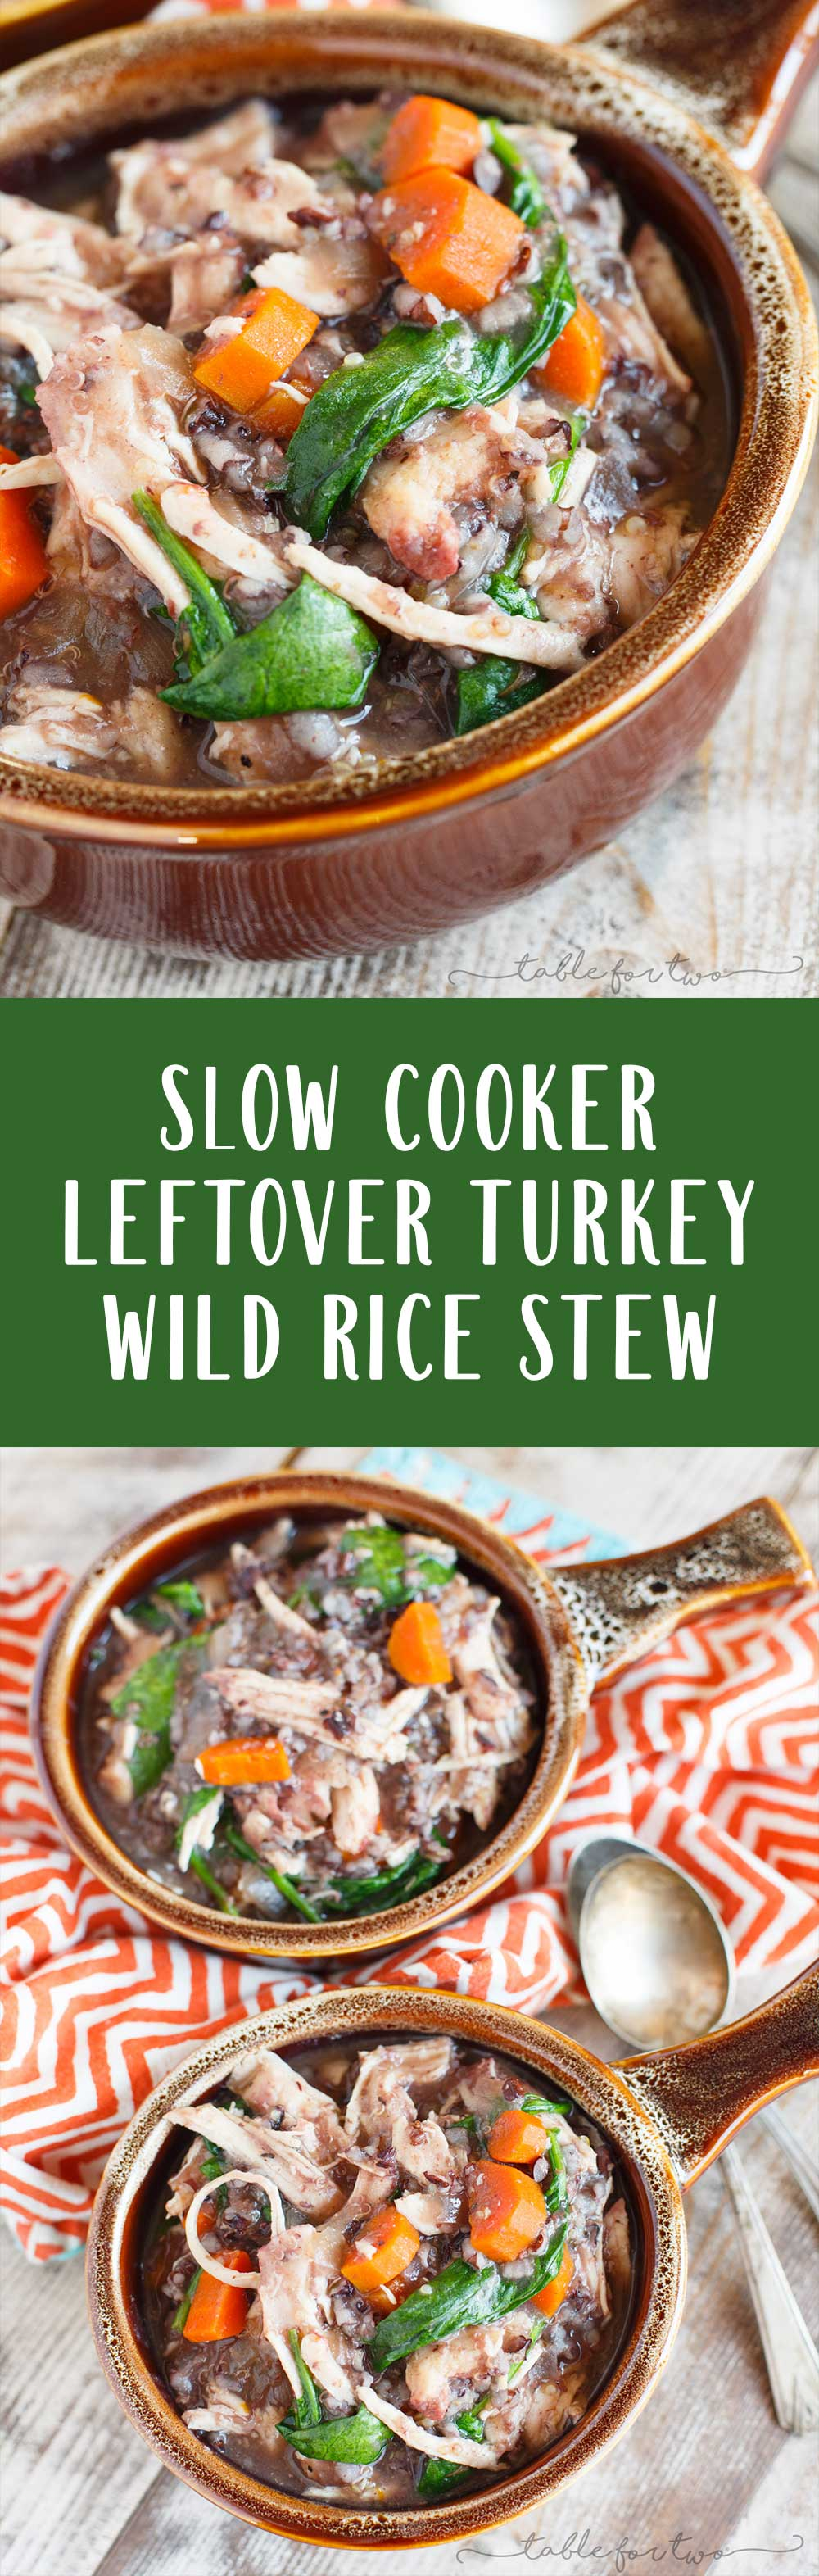 A delicious hearty and comforting slow cooker wild rice stew made with leftover Thanksgiving turkey or any other extra meat that you have leftover! It's a great way to incorporate leftovers in a different way!